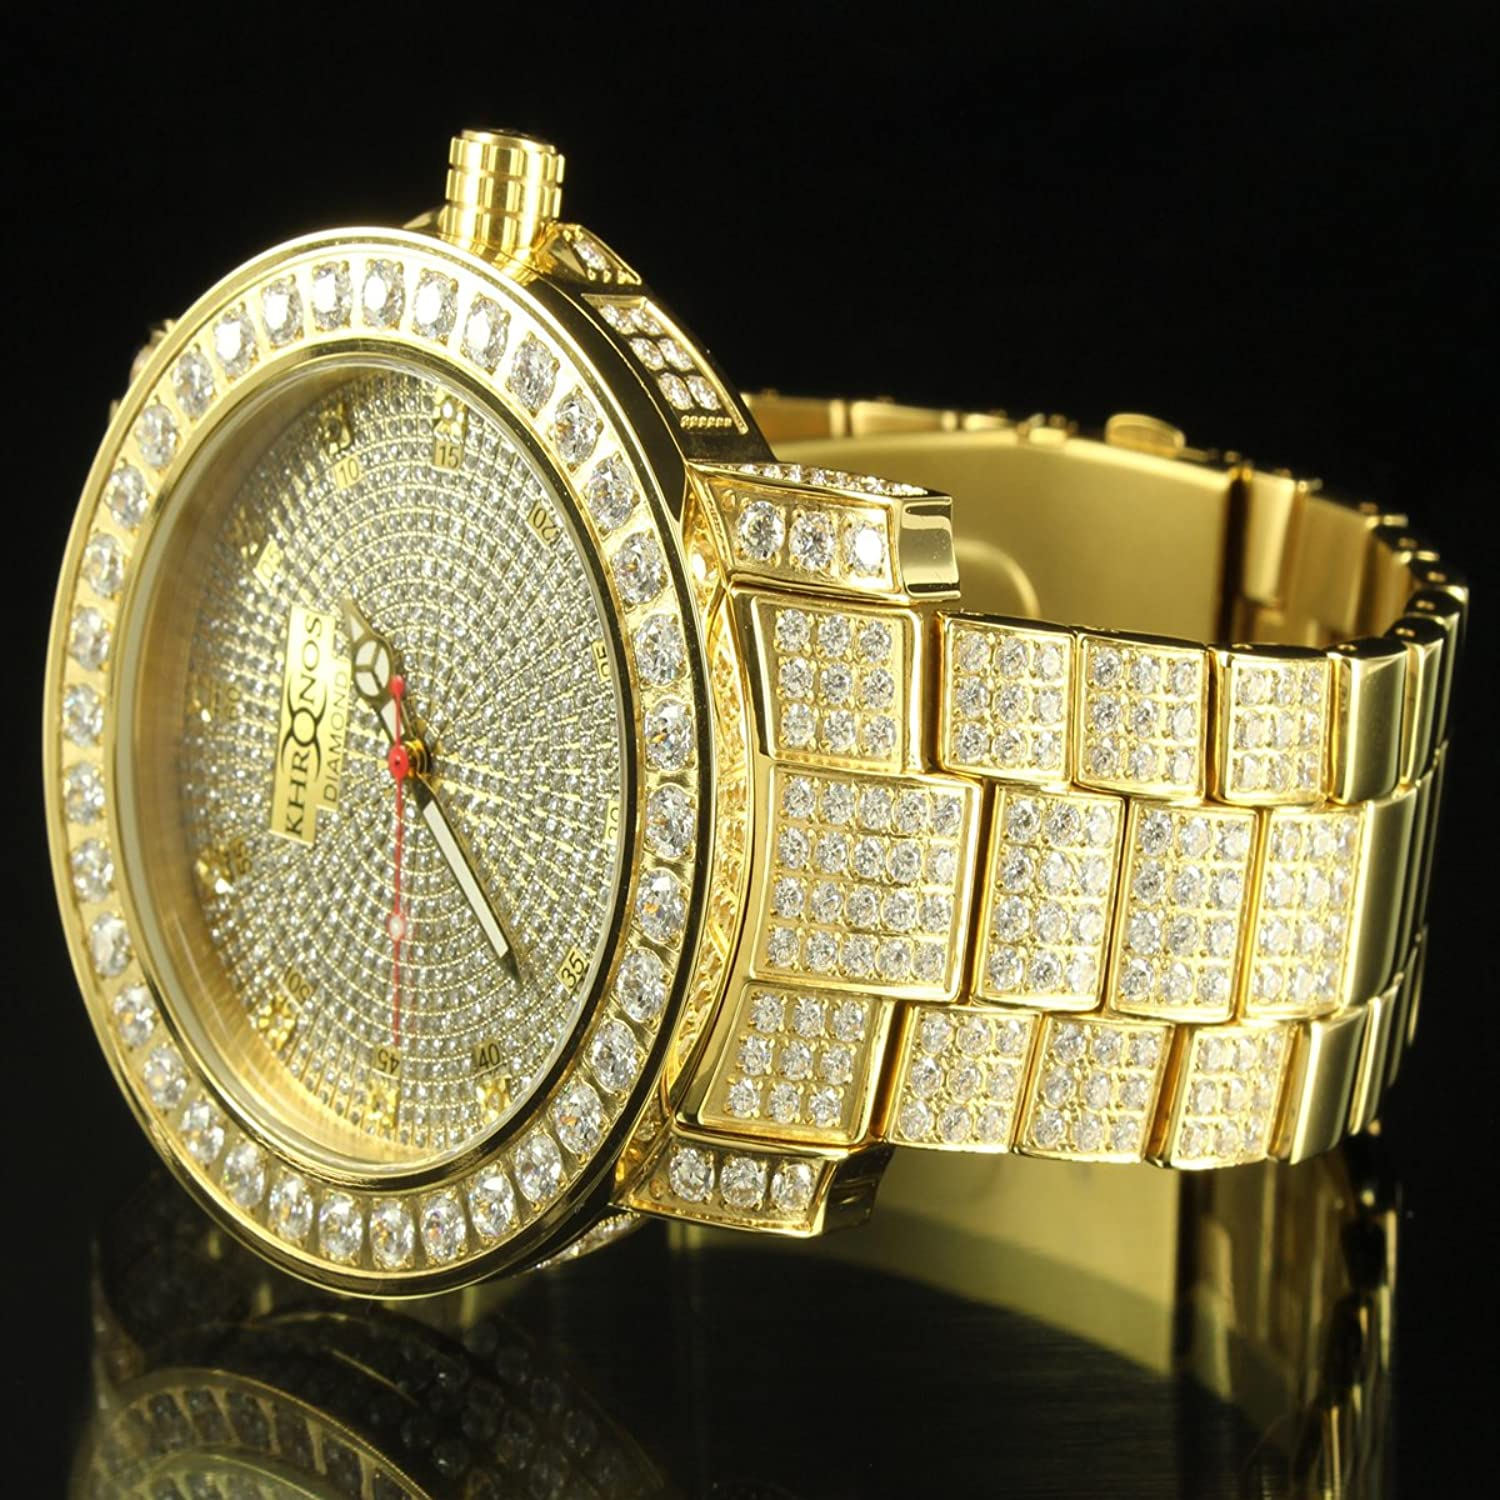 ladies rhinestones watch image quartz gifts gold golden products bracelets retro watches women chenxi product waterproof